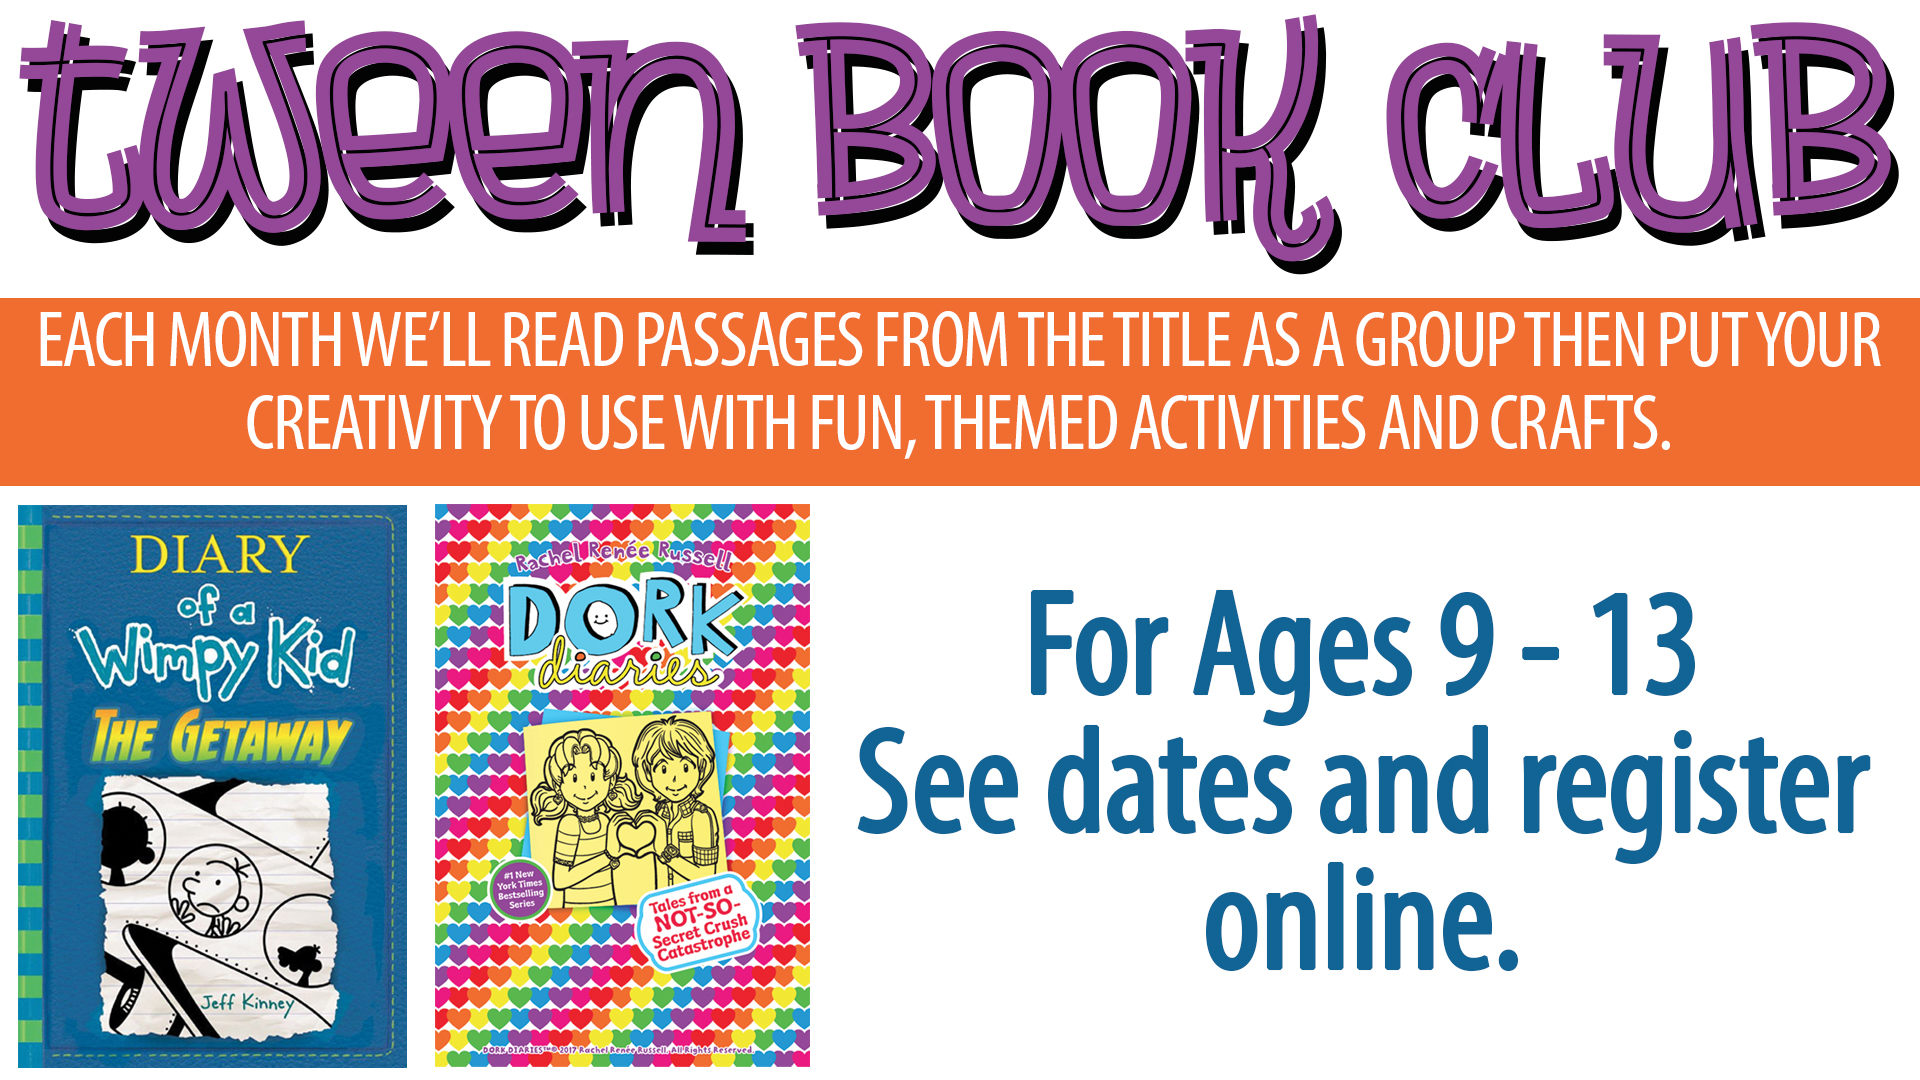 Tween Book Club:  Dork Diaries